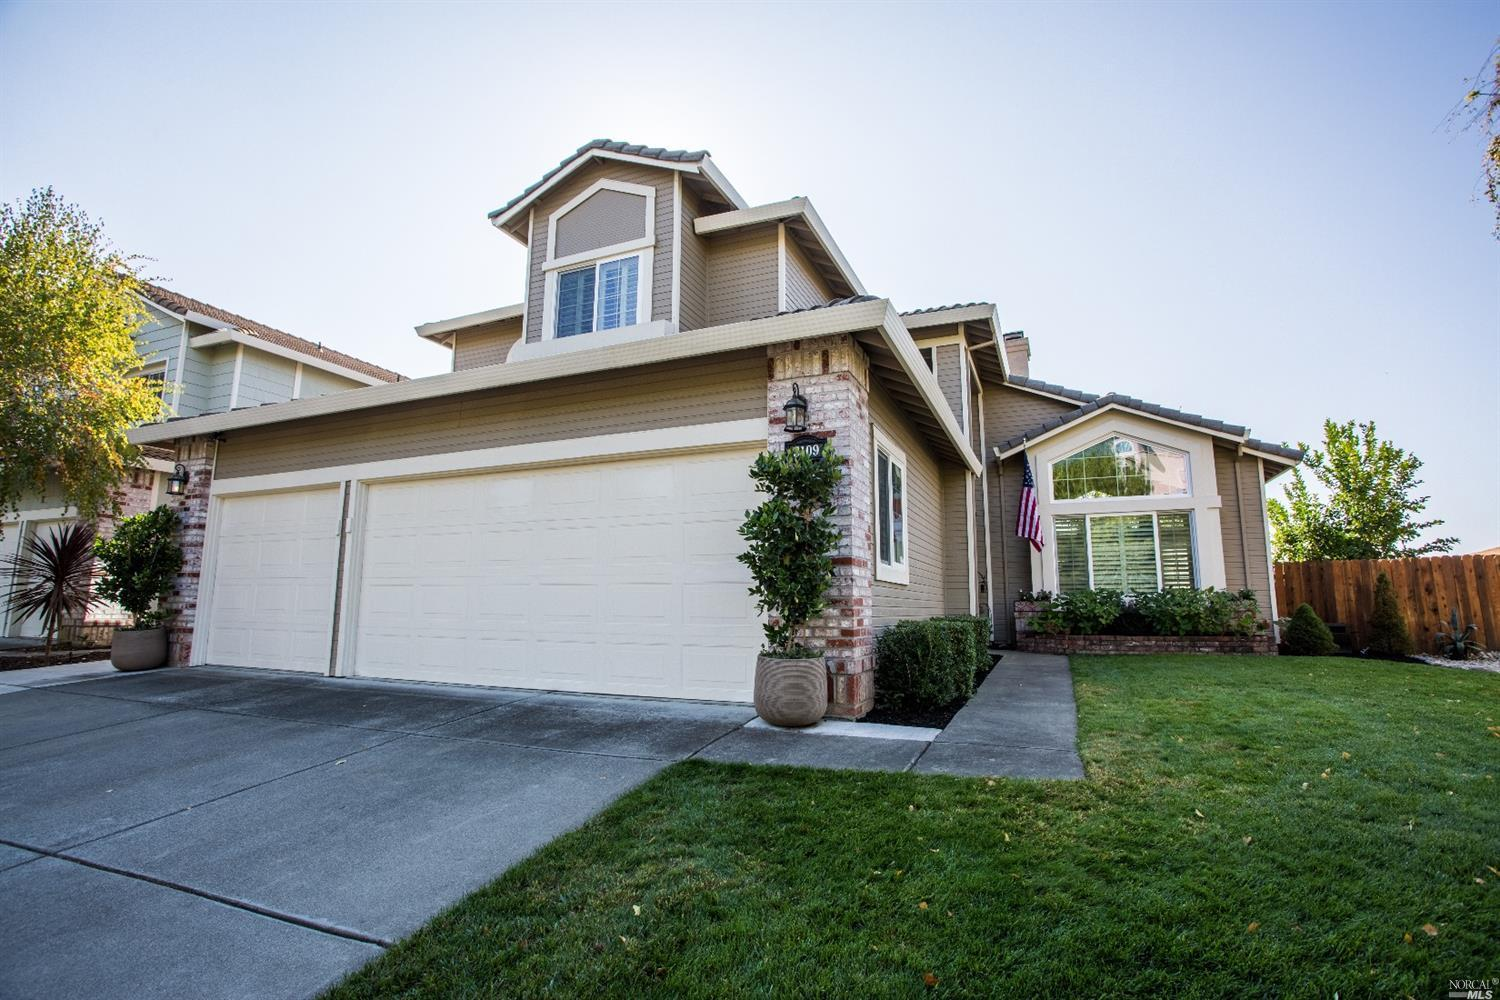 3109 SONOMA VALLEY DR, FAIRFIELD, CA — MLS 21725824 — Better Homes and Gardens Real Estate